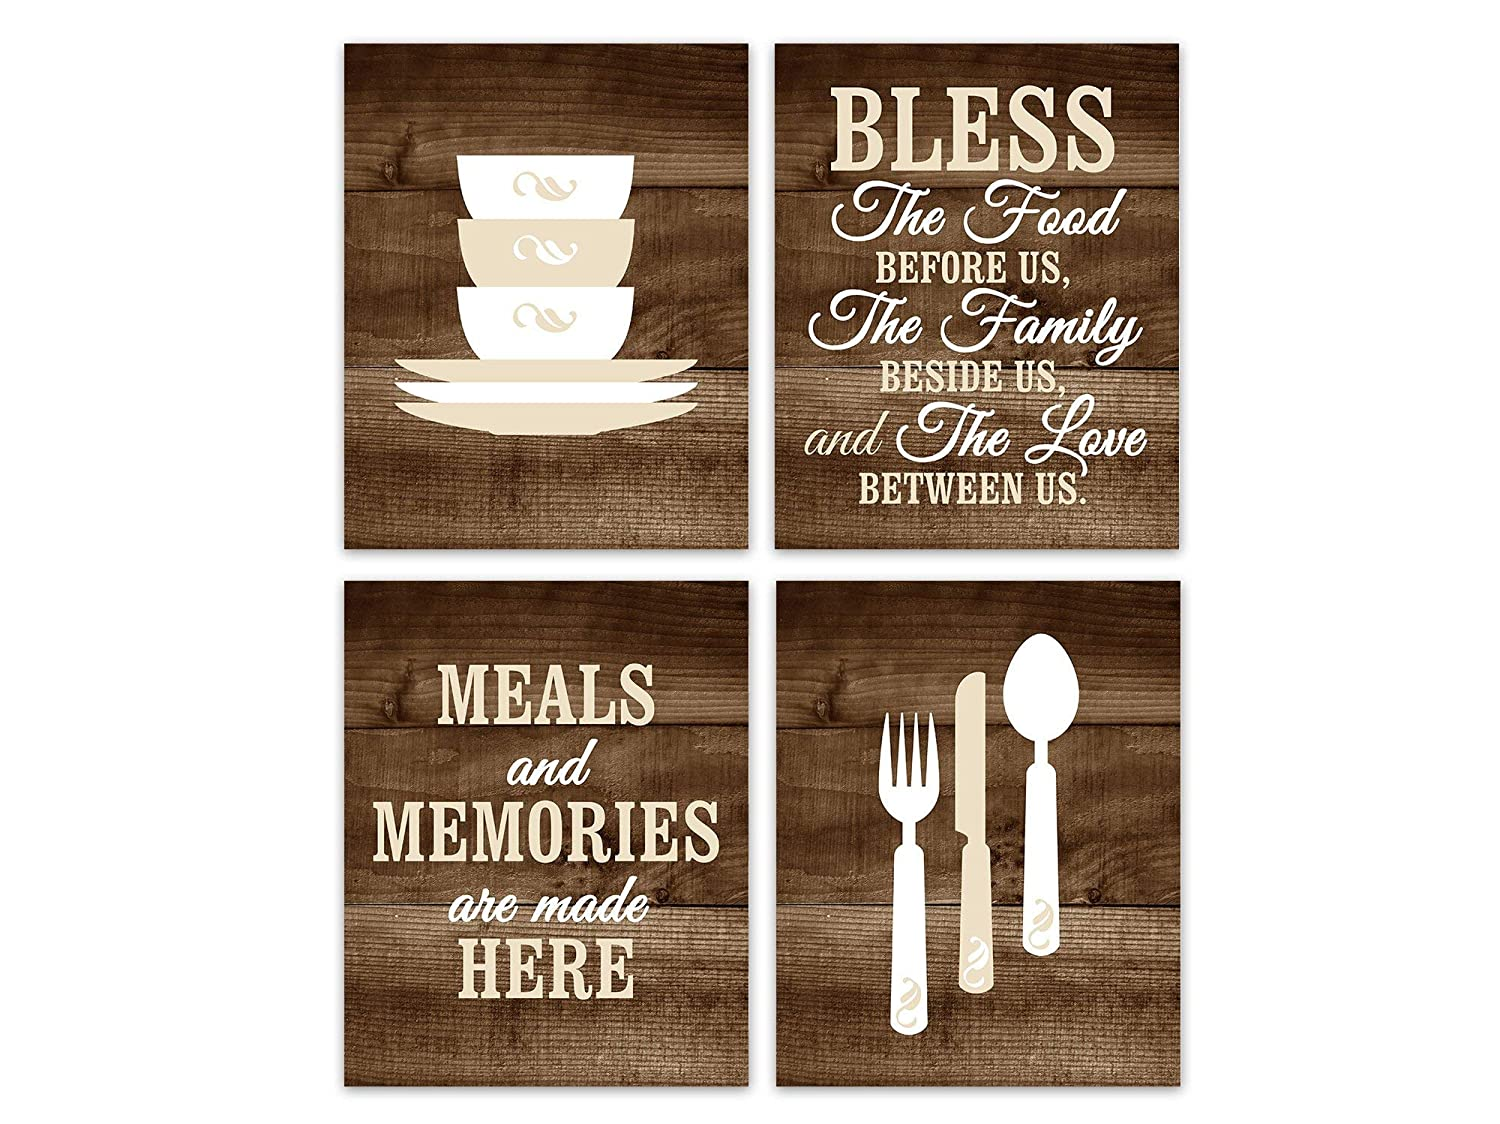 Barnett Duncan Meals and Memories are Made Here Bless The Food Before Us Sign Rustic Kitchen Wall Art Stacking Bowls Pictures Fork Spoon Art 8x10 inche